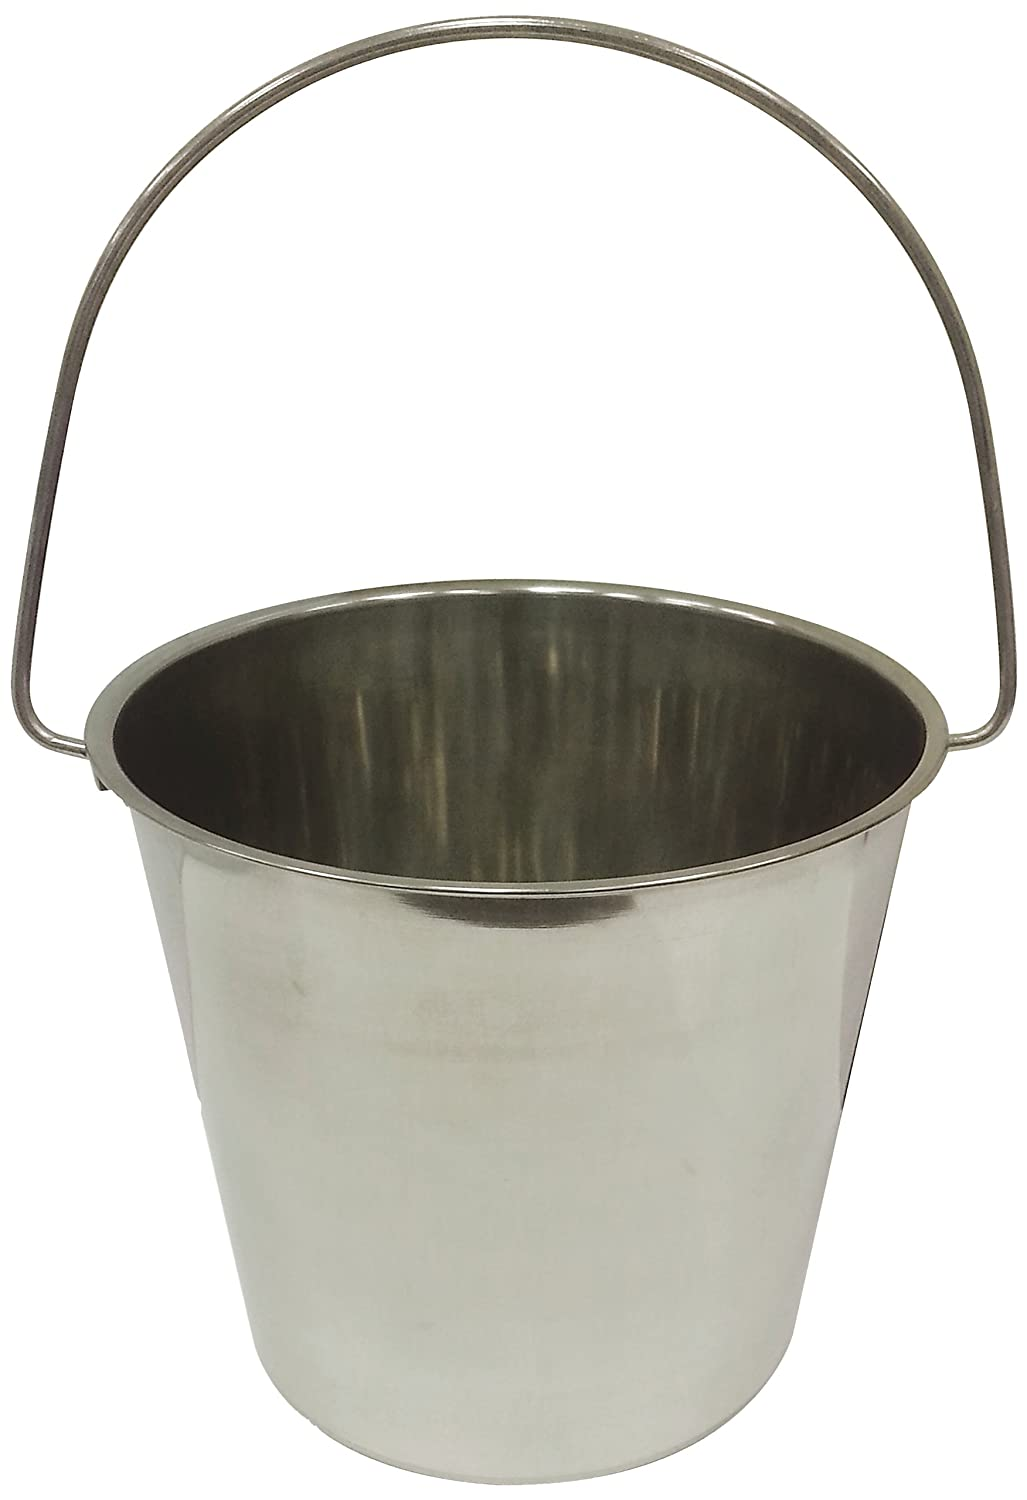 Stainless Steel Pail with Handle mini stainless steel handle cuticle fork silver